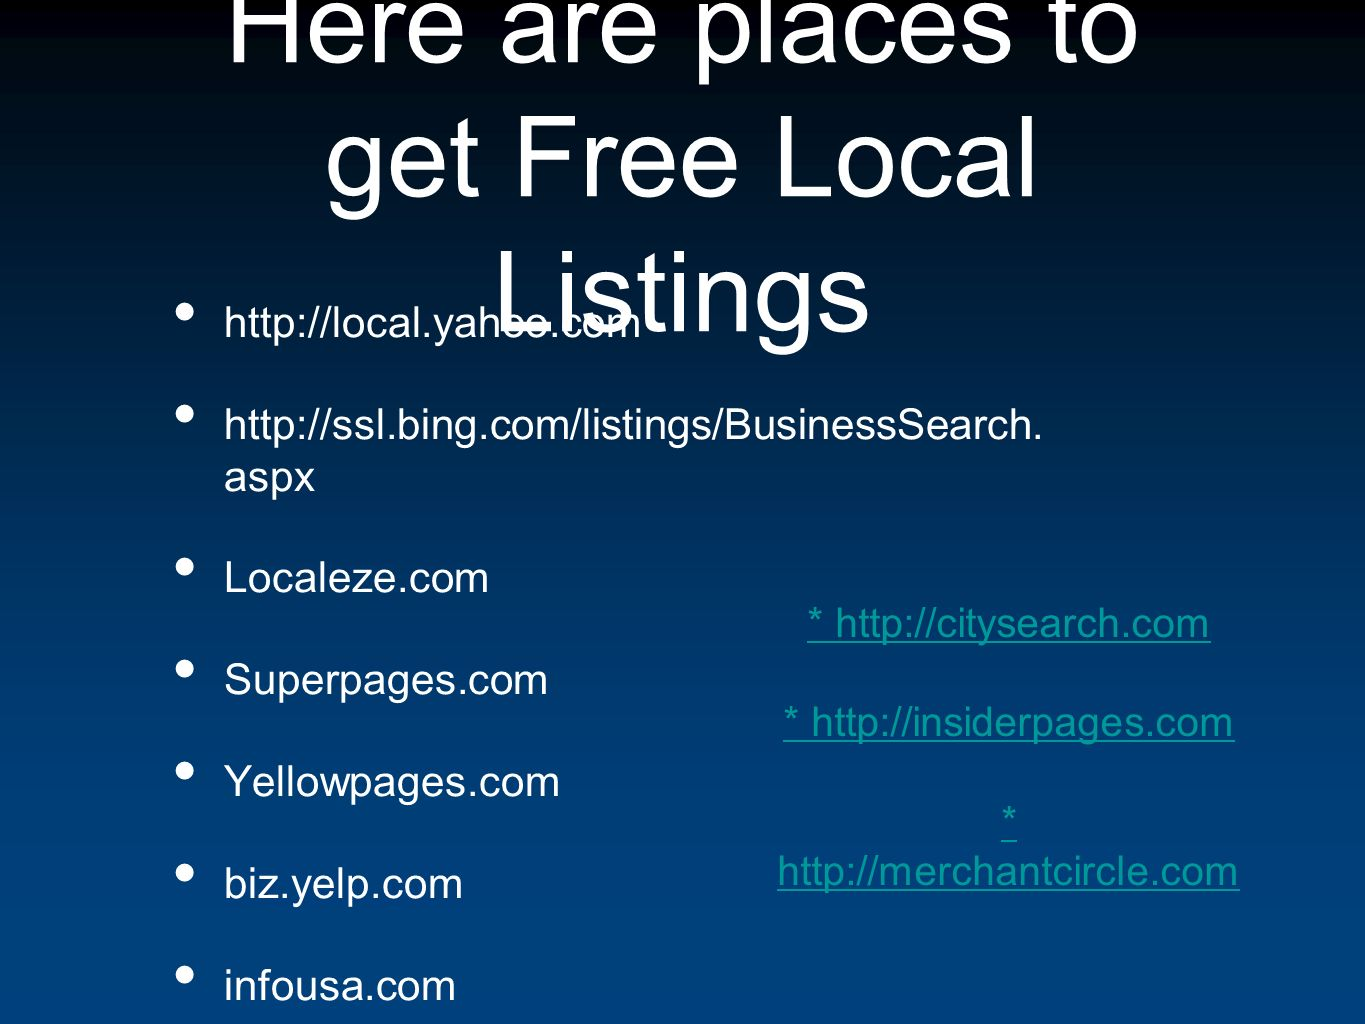 Here are places to get Free Local Listings